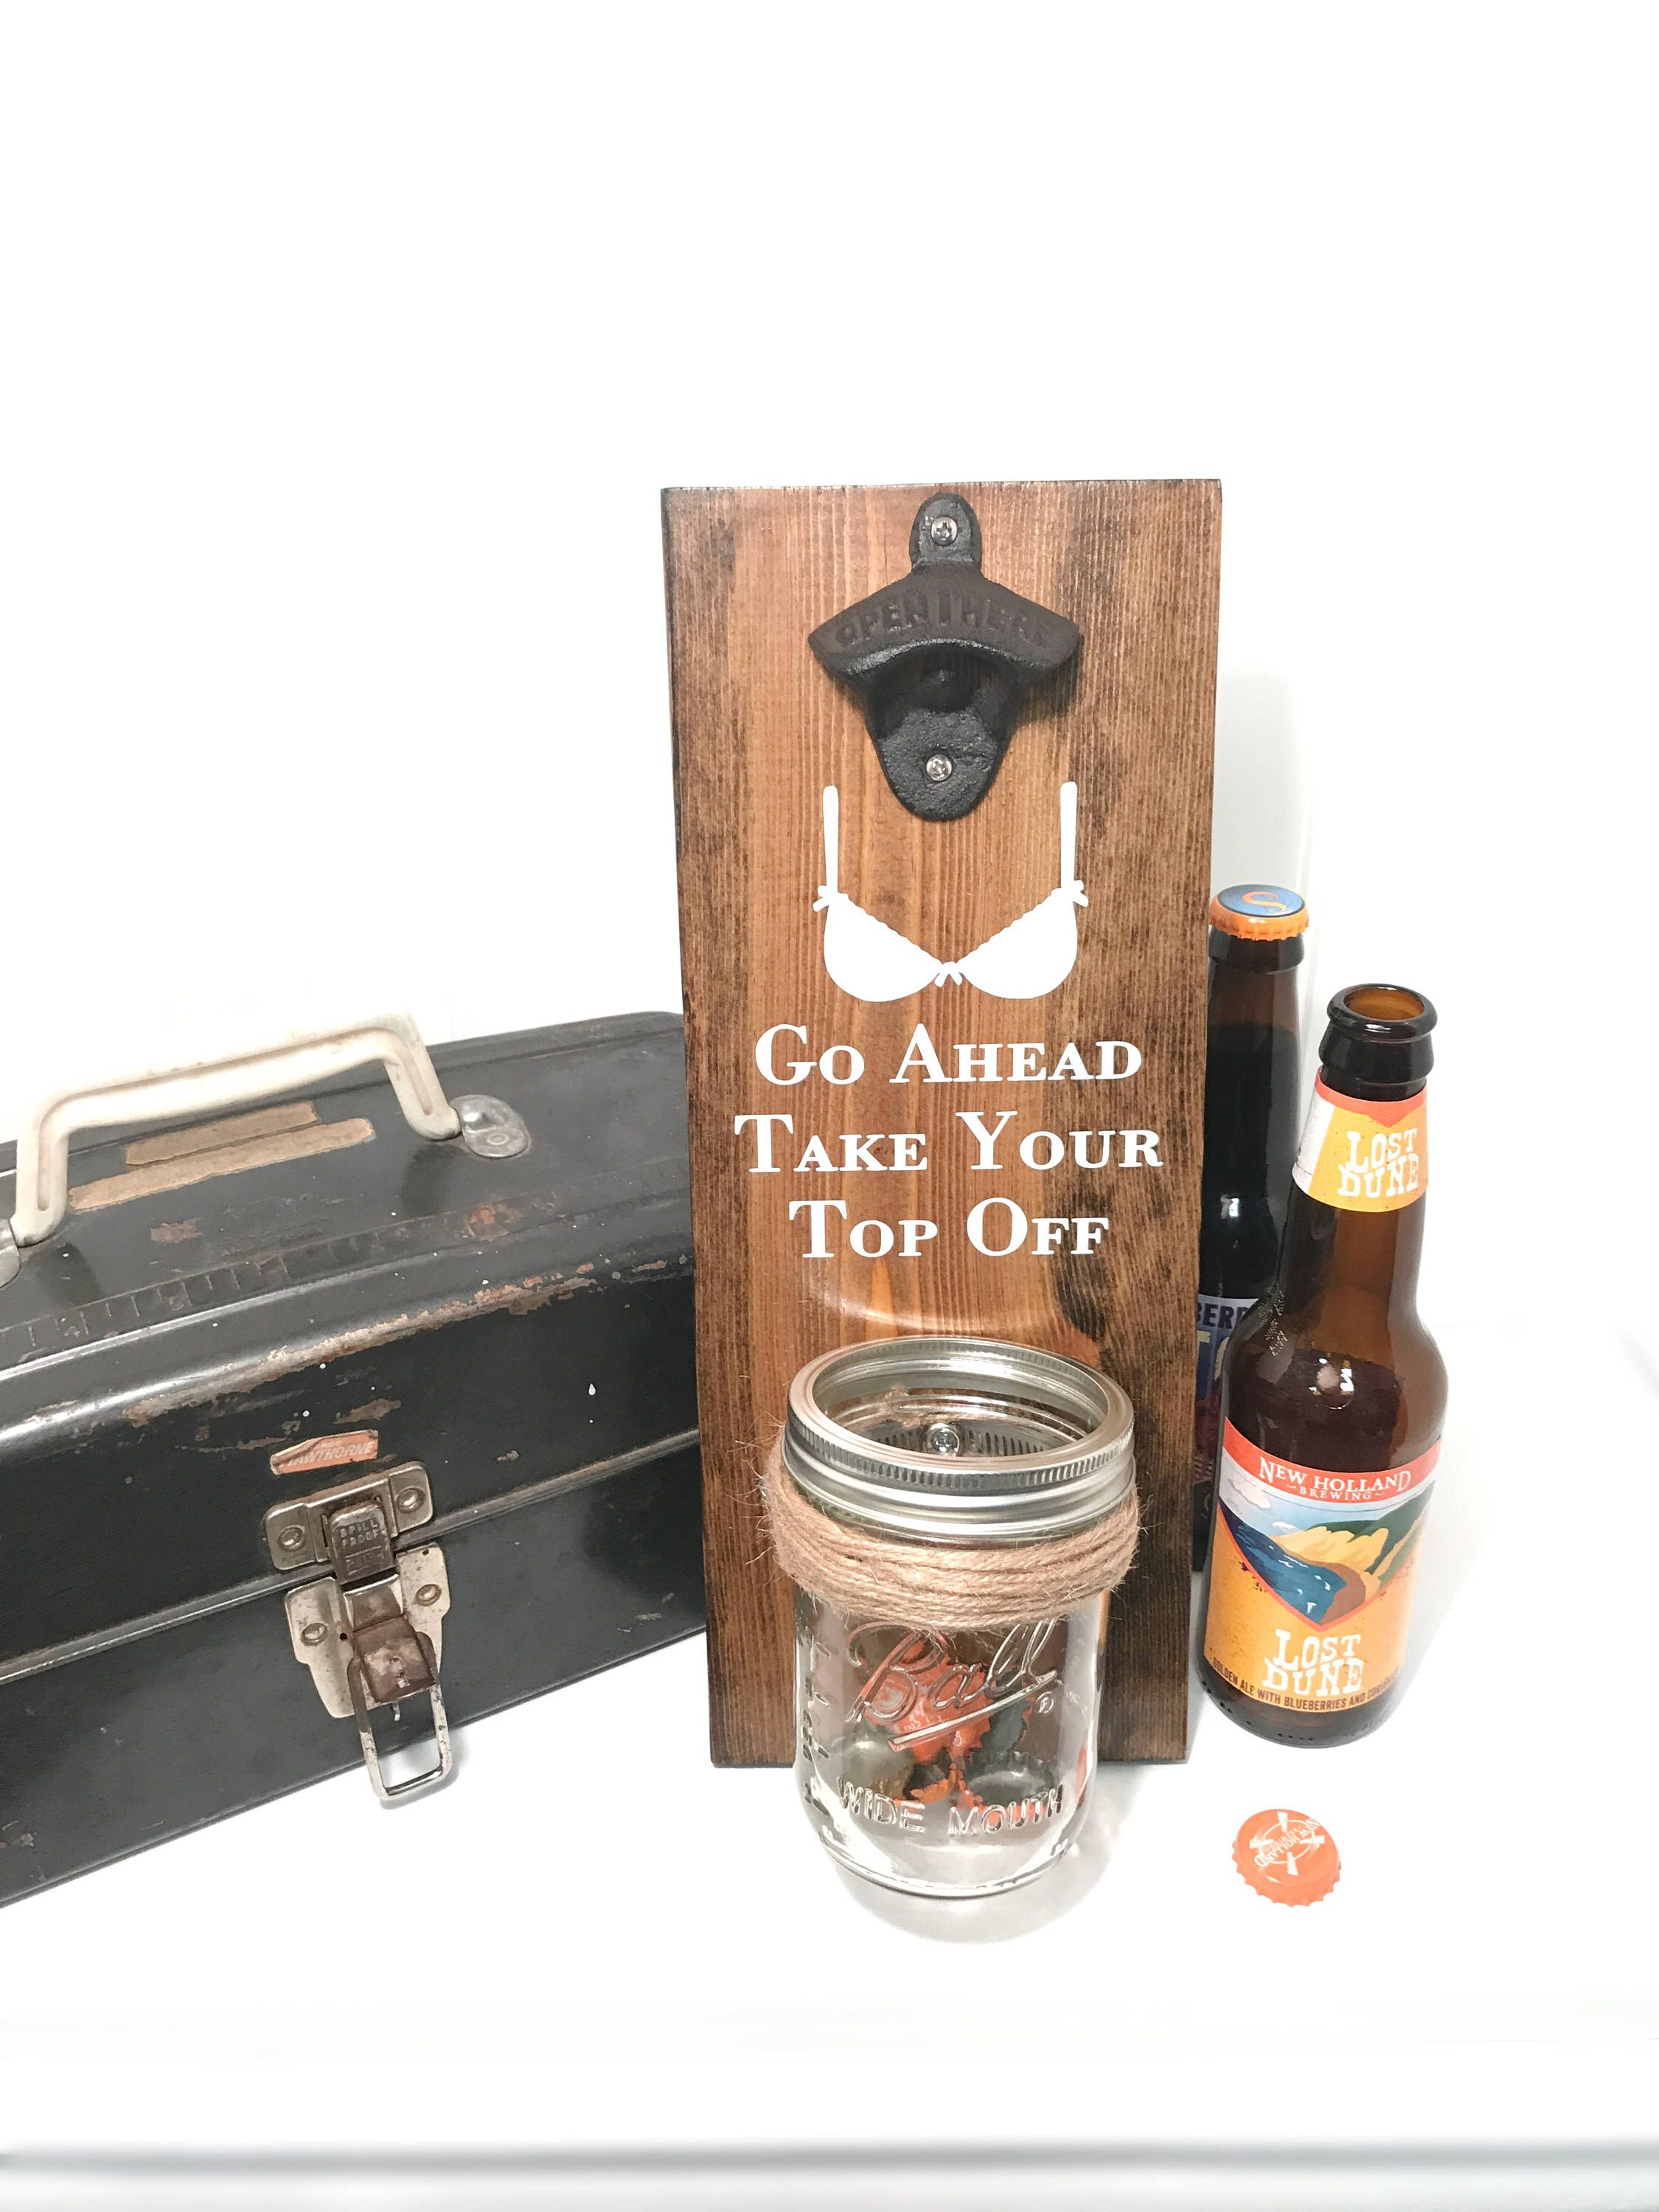 Humorous gift humorous bottle opener gift for him take your top off wall